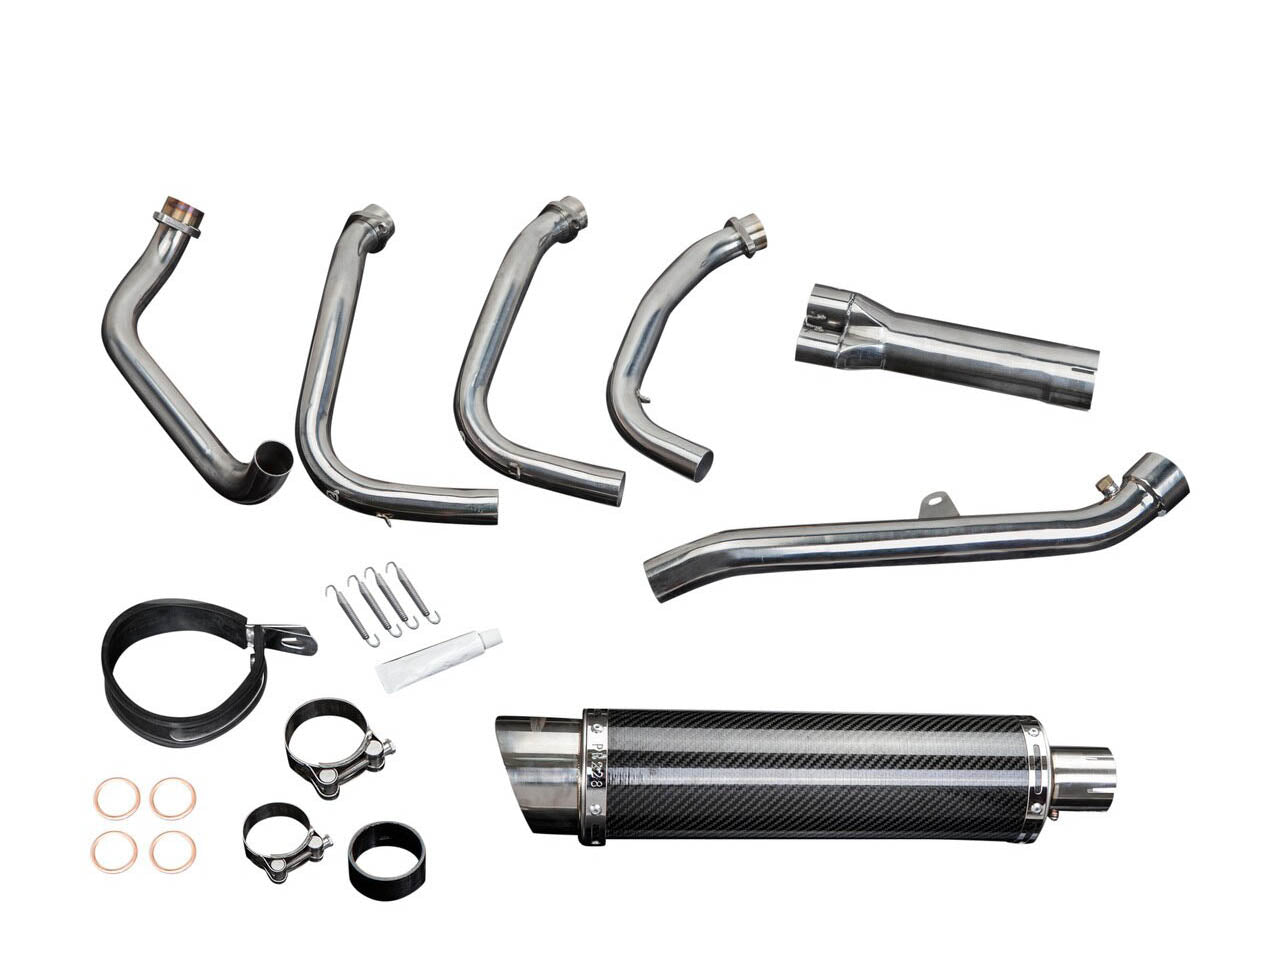 "DELKEVIC Honda CBR1100XX Blackbird Full Exhaust System 4-1 with DL10 14"" Carbon Silencer"